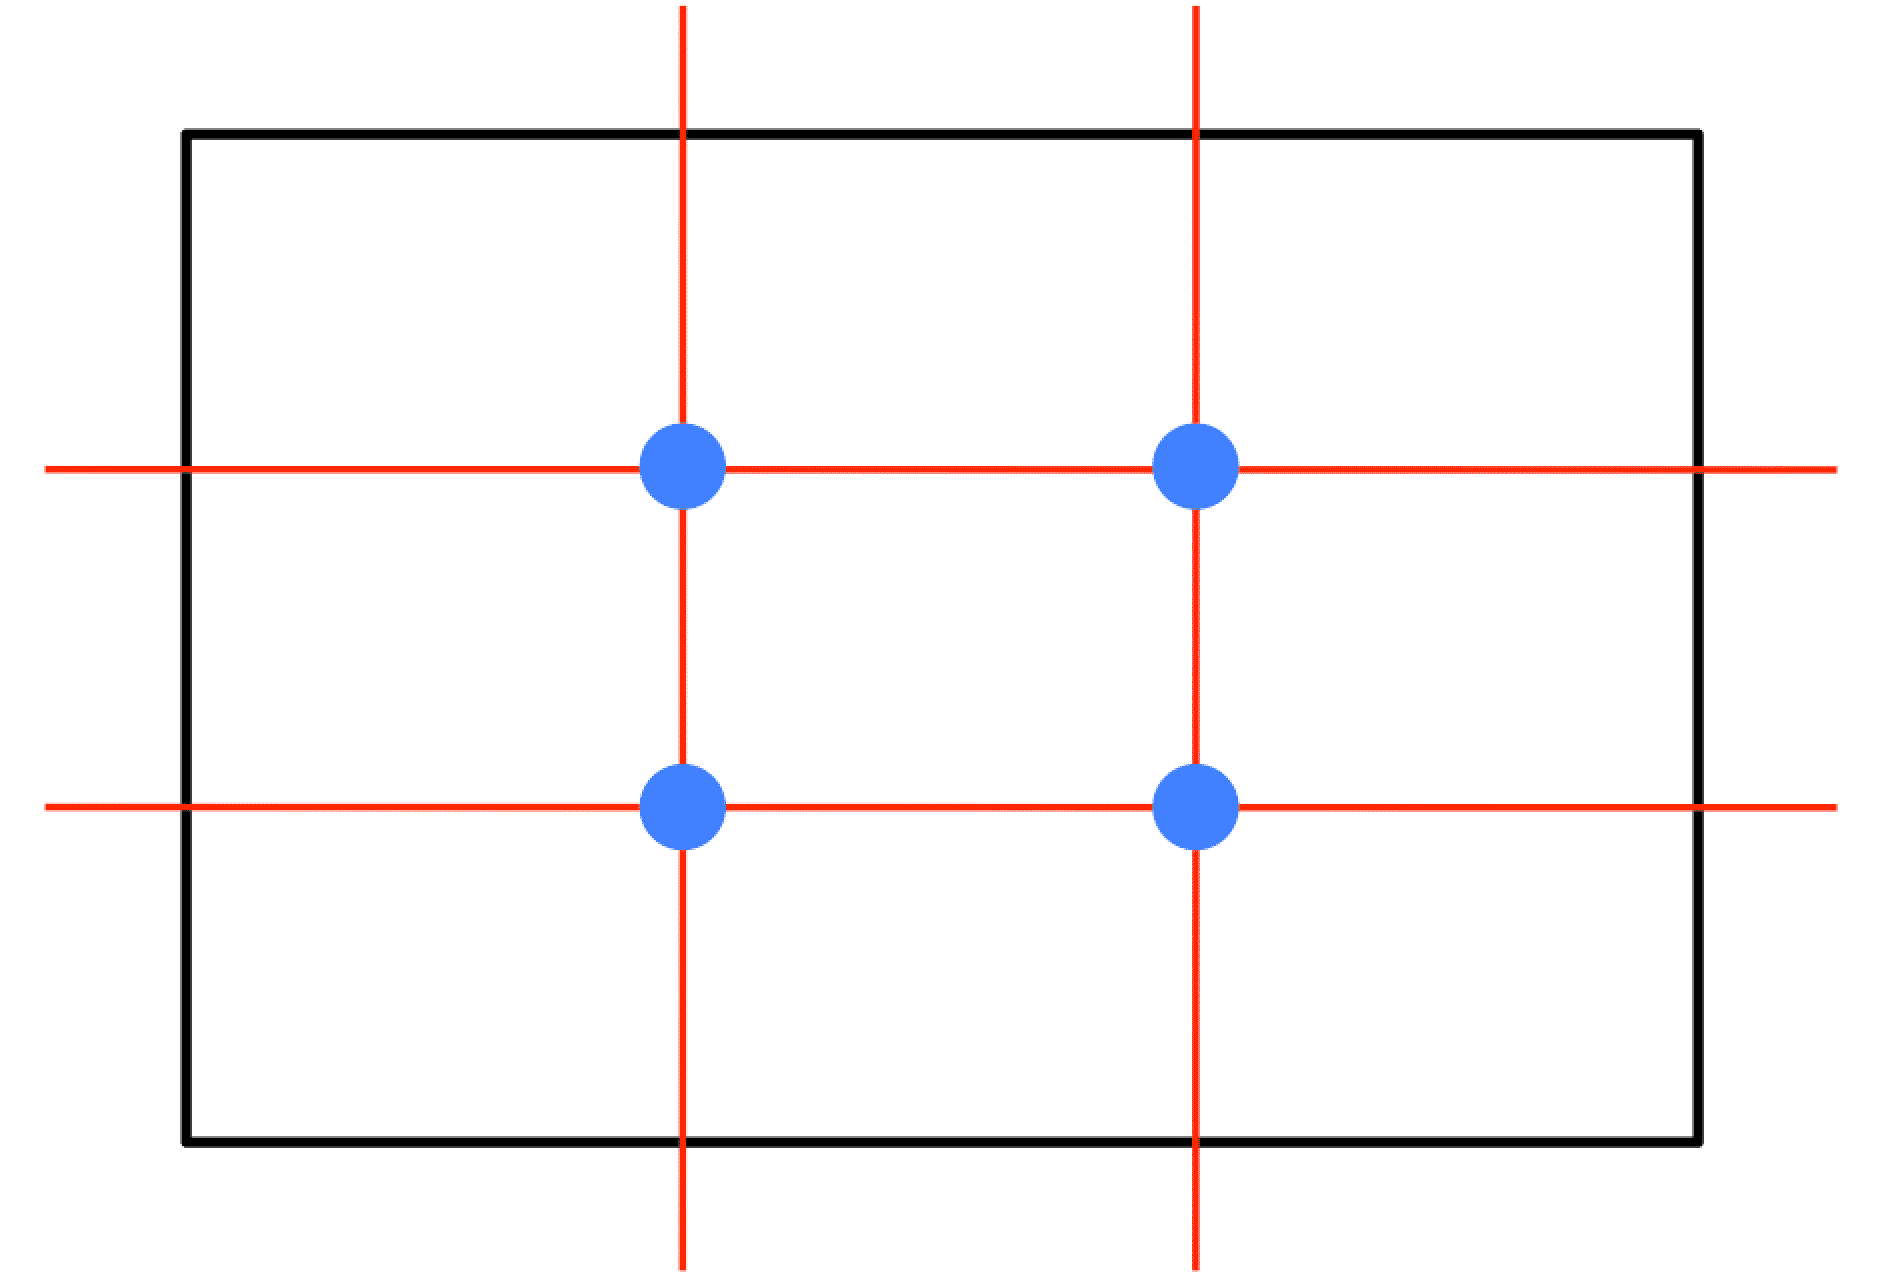 Image describes the rule of thirds technique to take better family snapshot pictures.